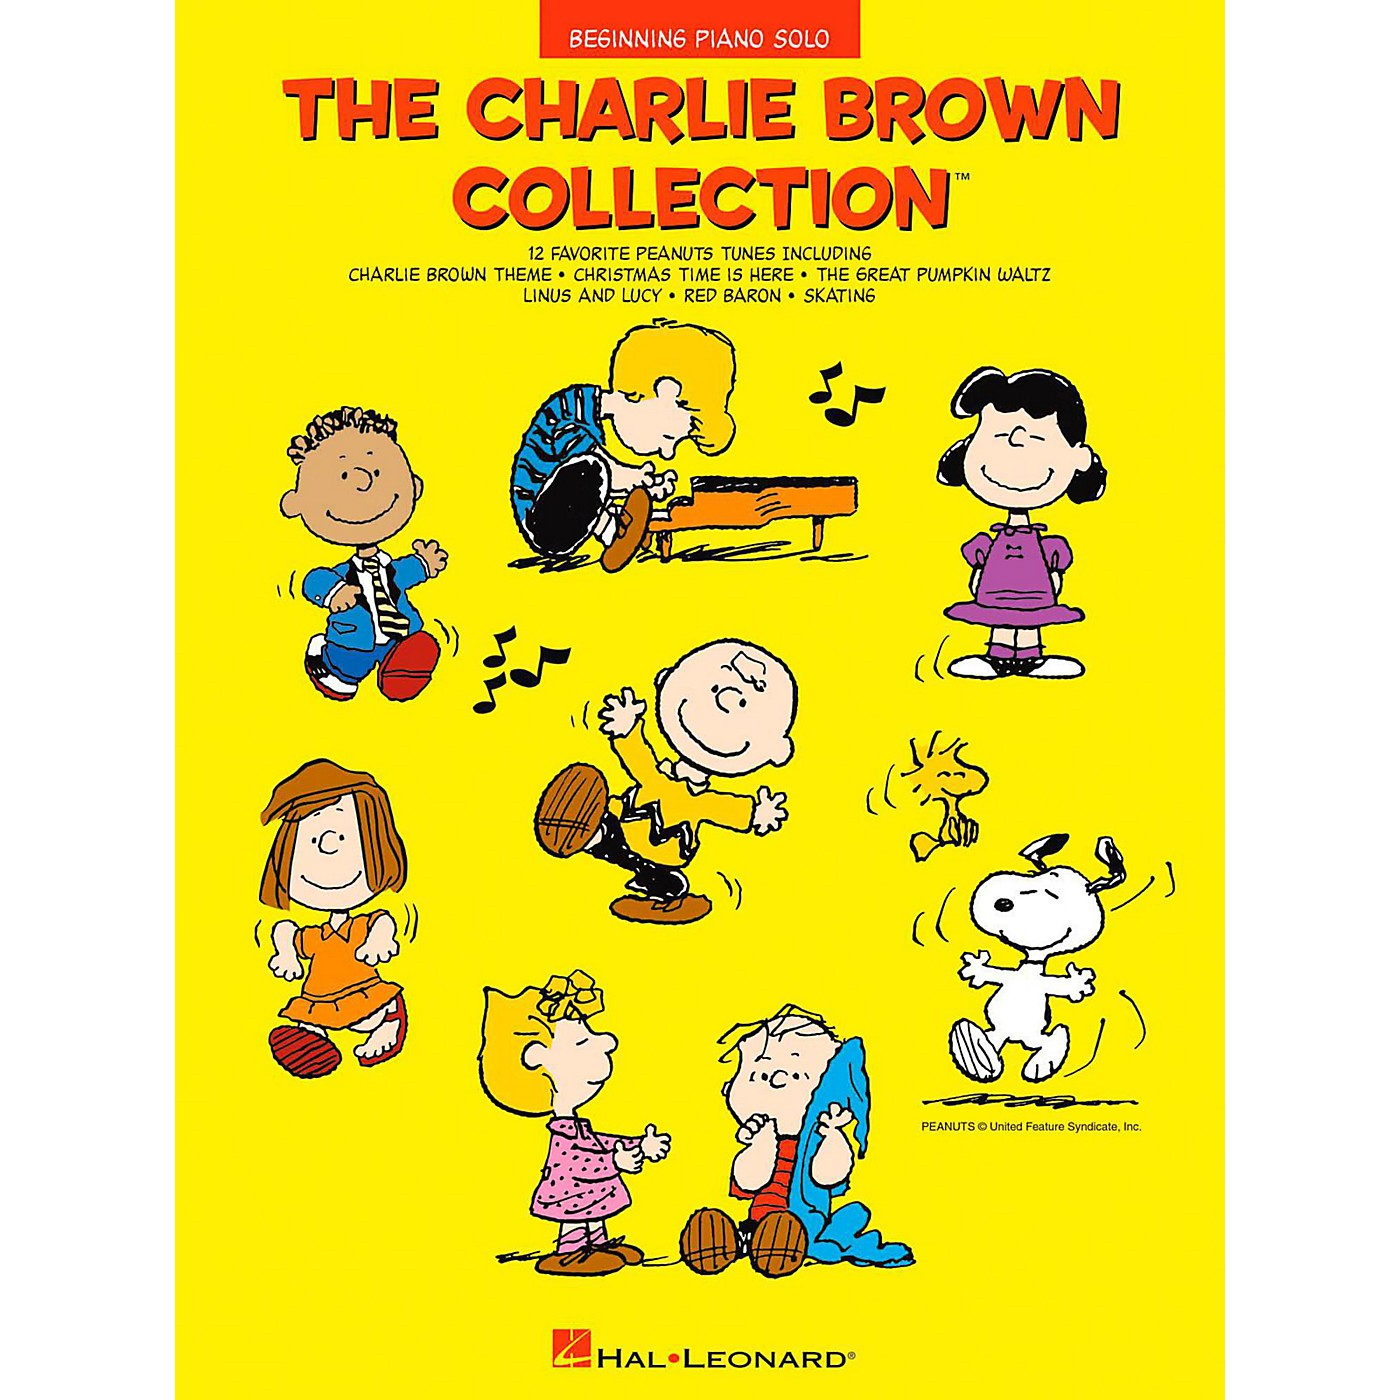 Hal Leonard The Charlie Brown Collection - Beginning Piano Solos thumbnail